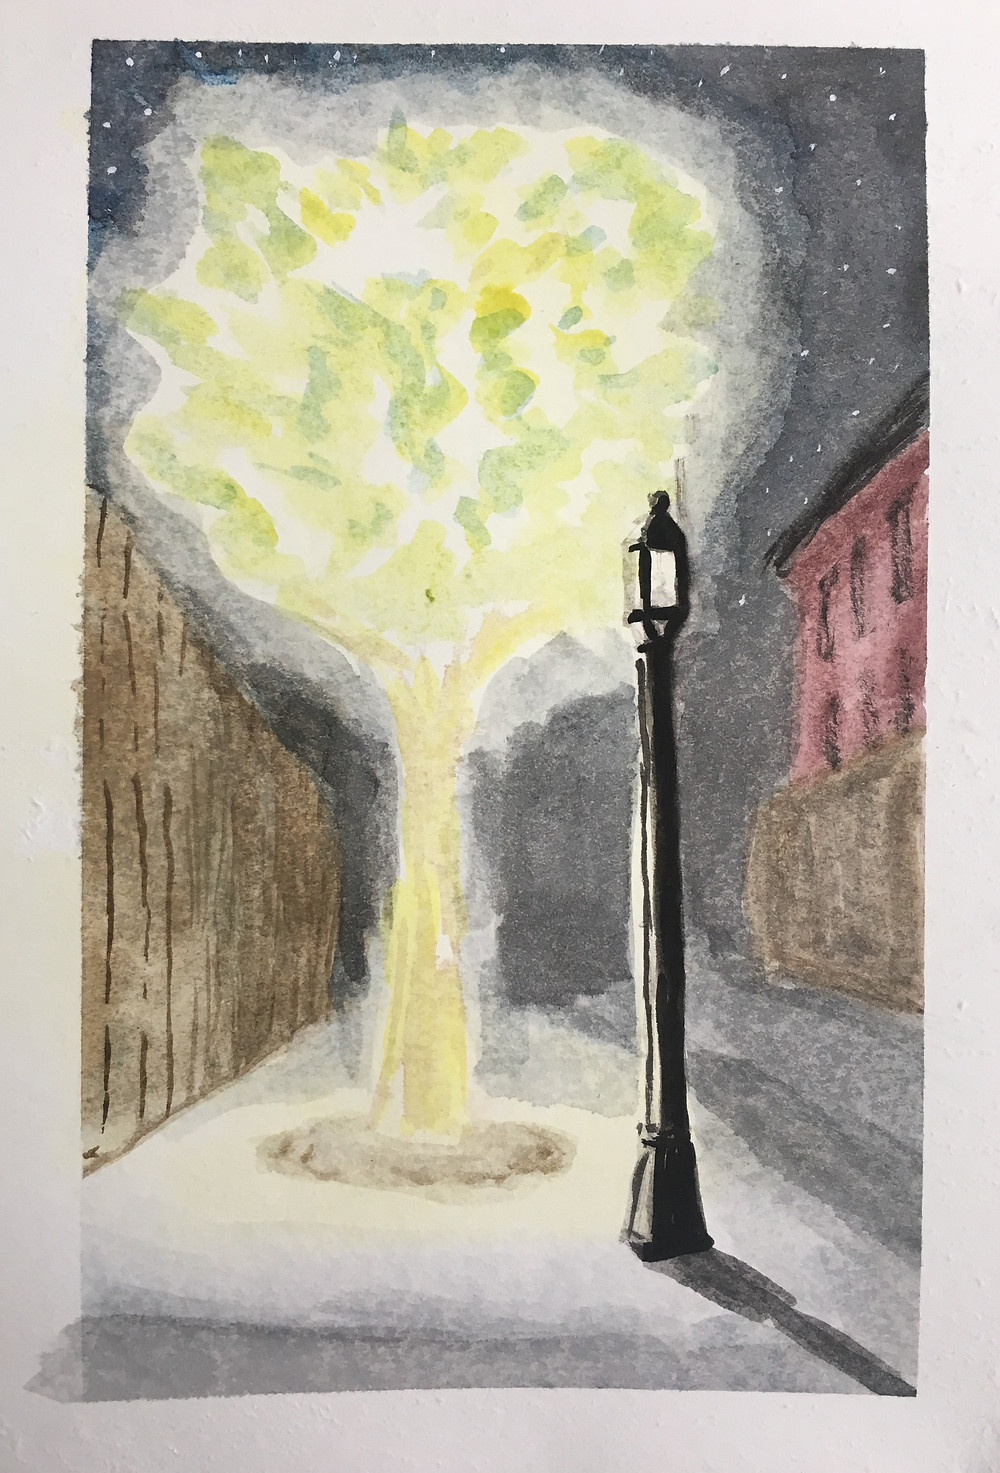 see the lamppost by the light of the tree